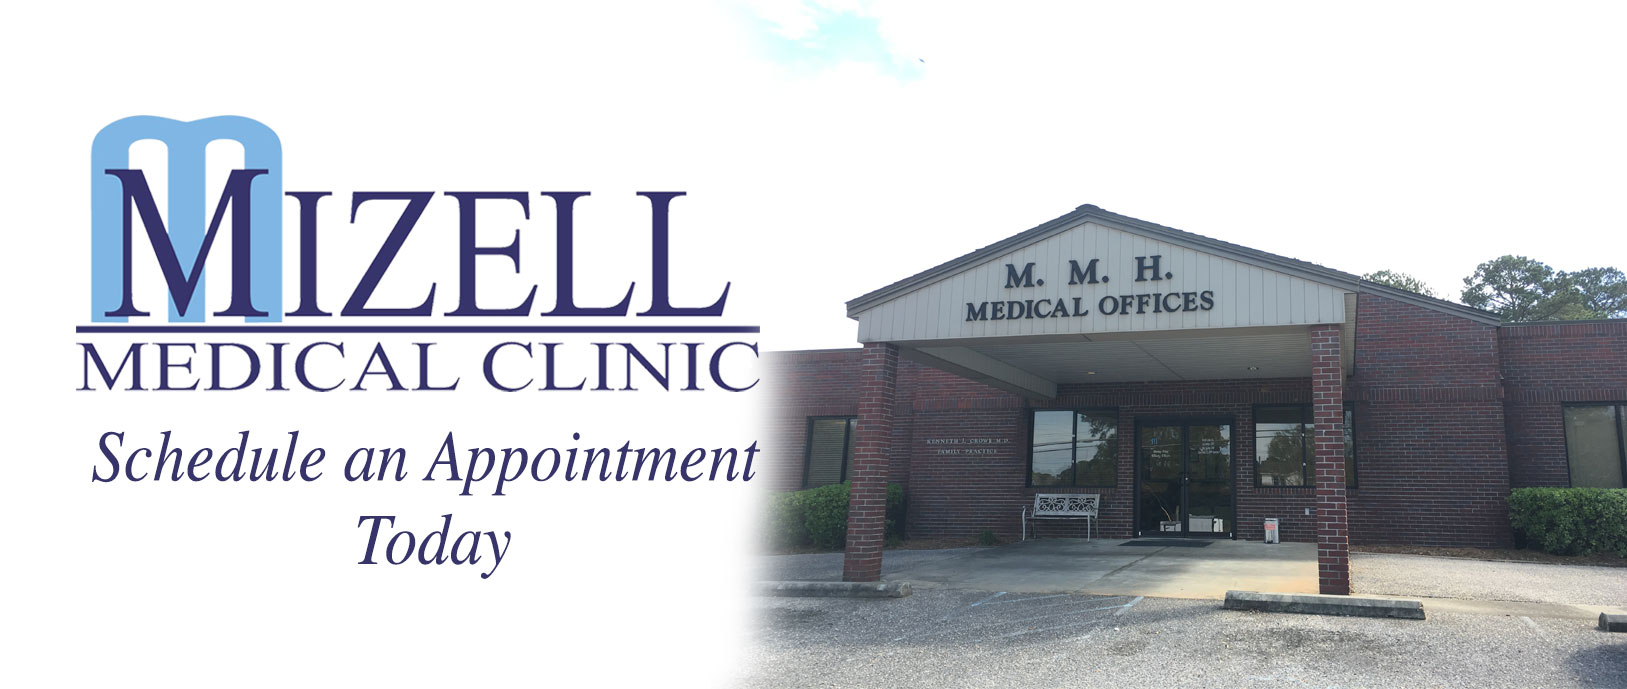 Mizell Medical Clinic, schedule an appointment today with an image of the medical offices building.